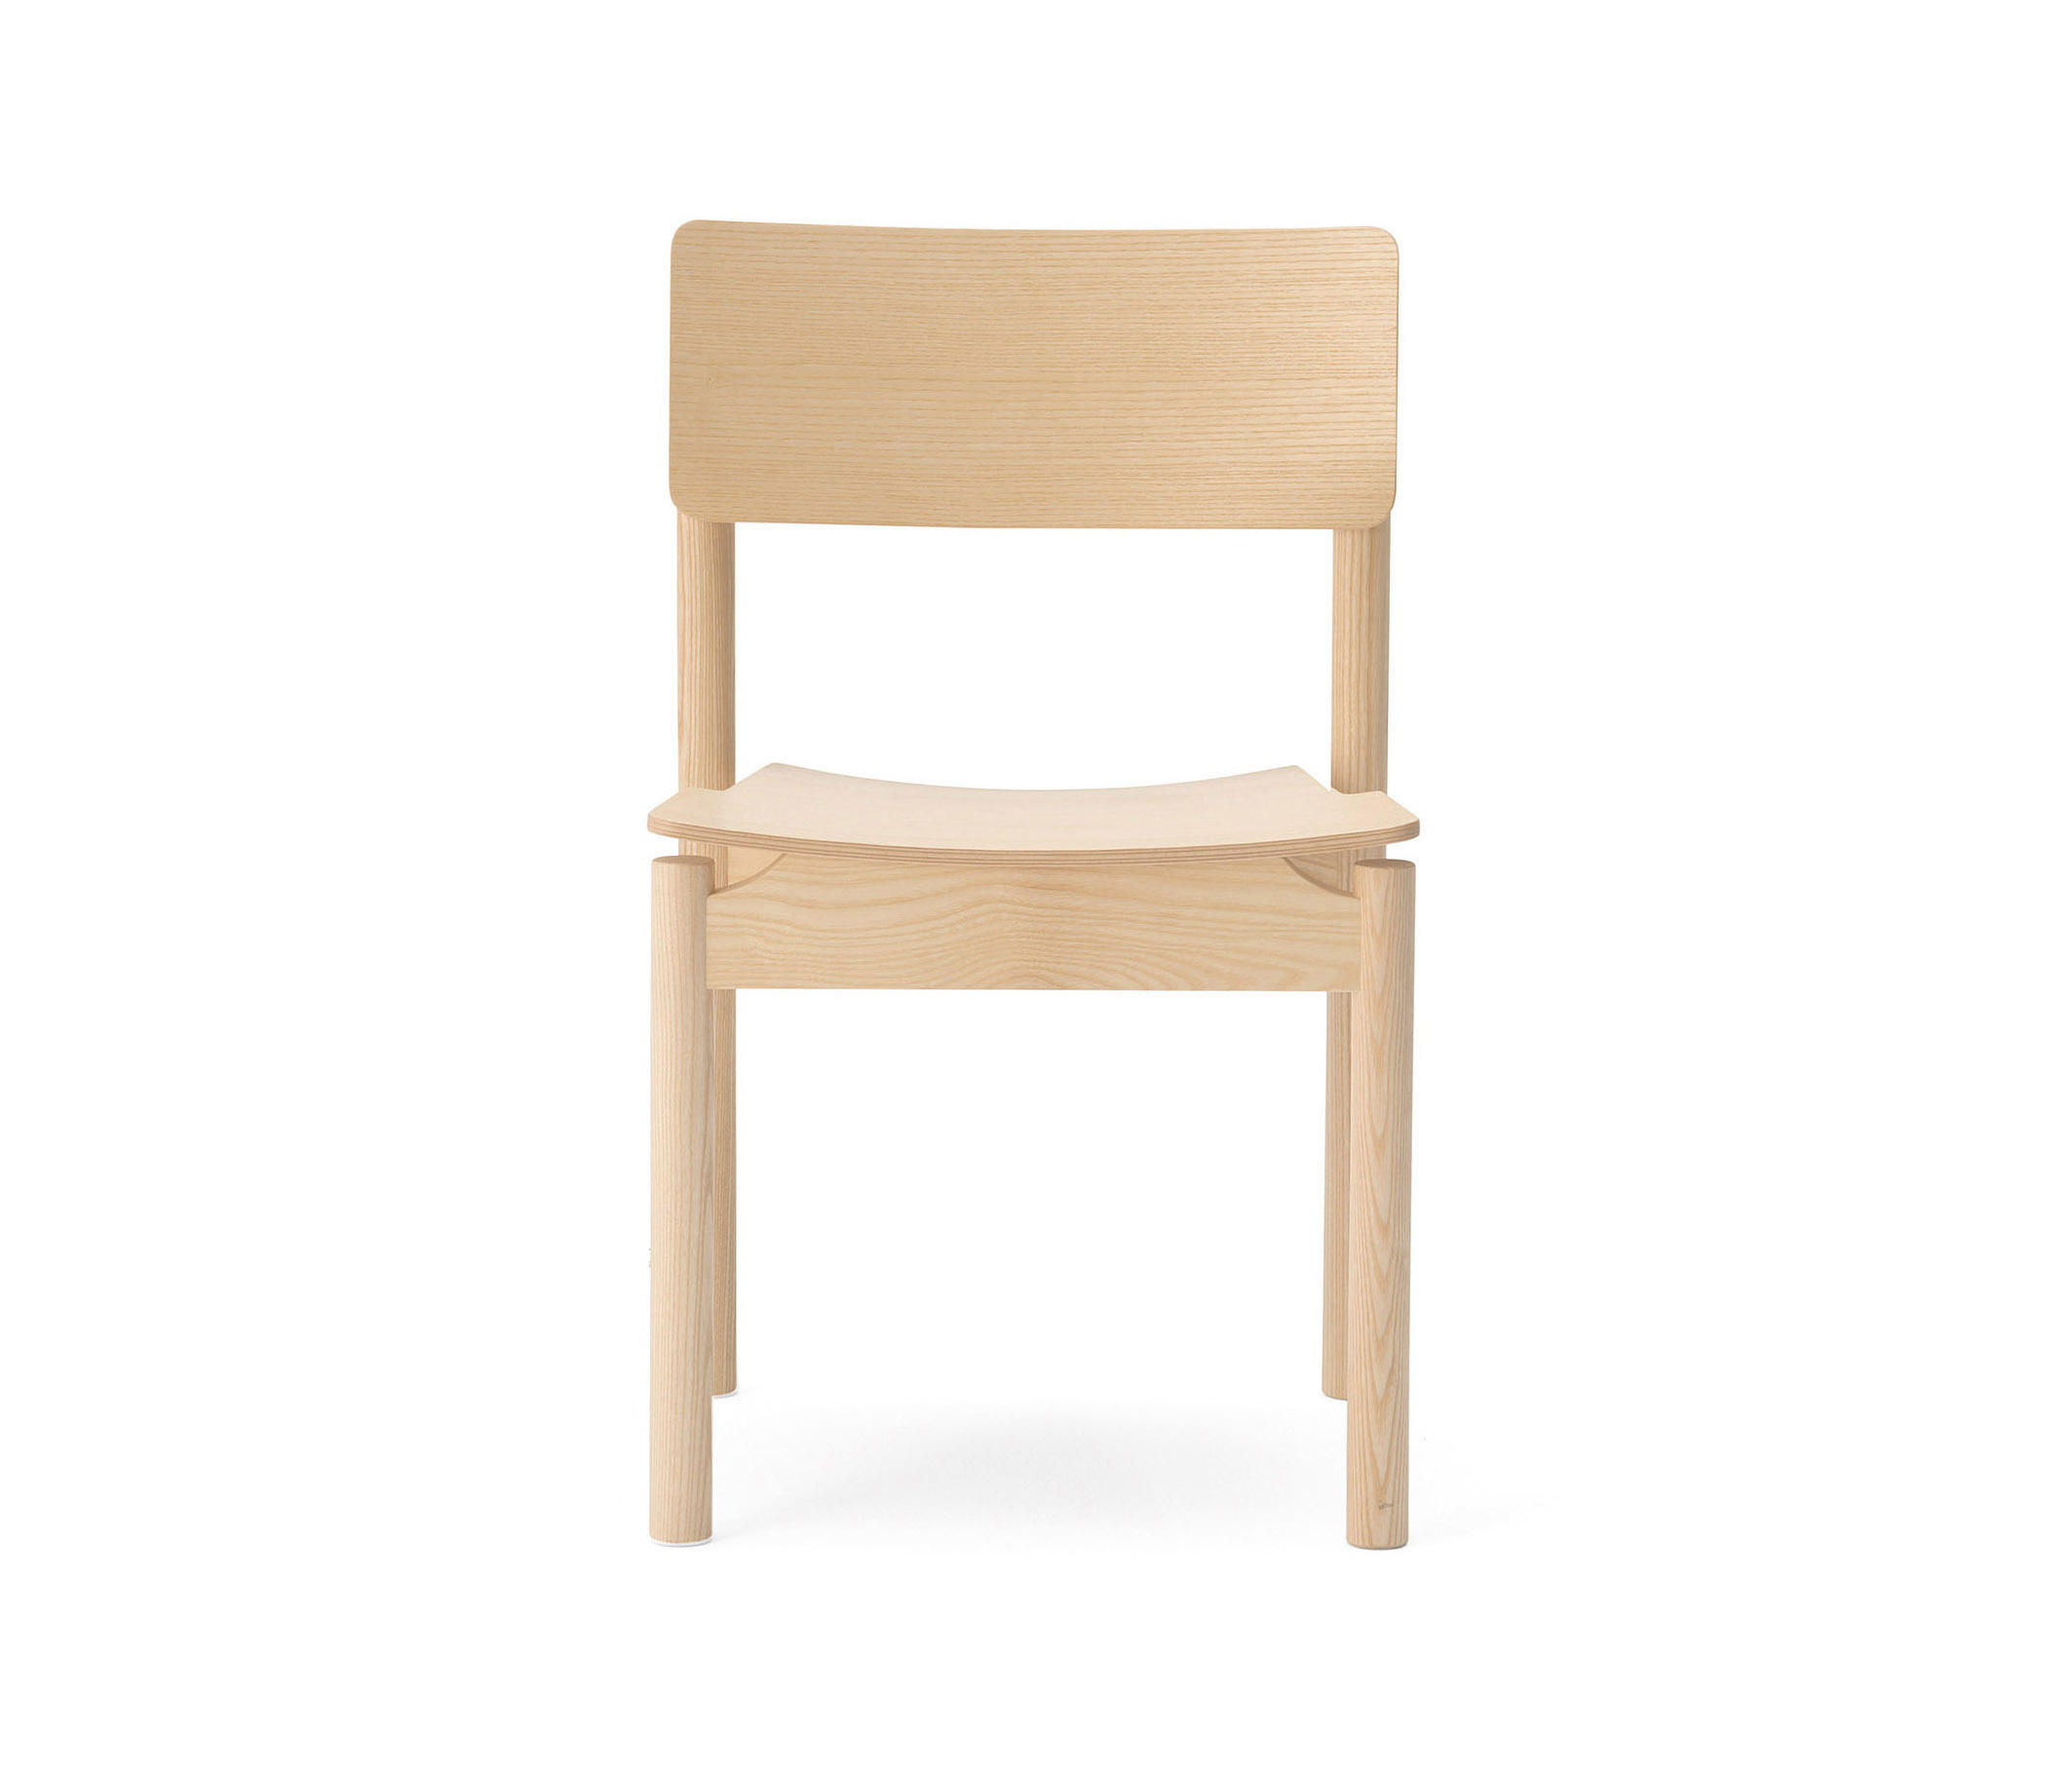 Green Wooden chair by Billiani | Chairs